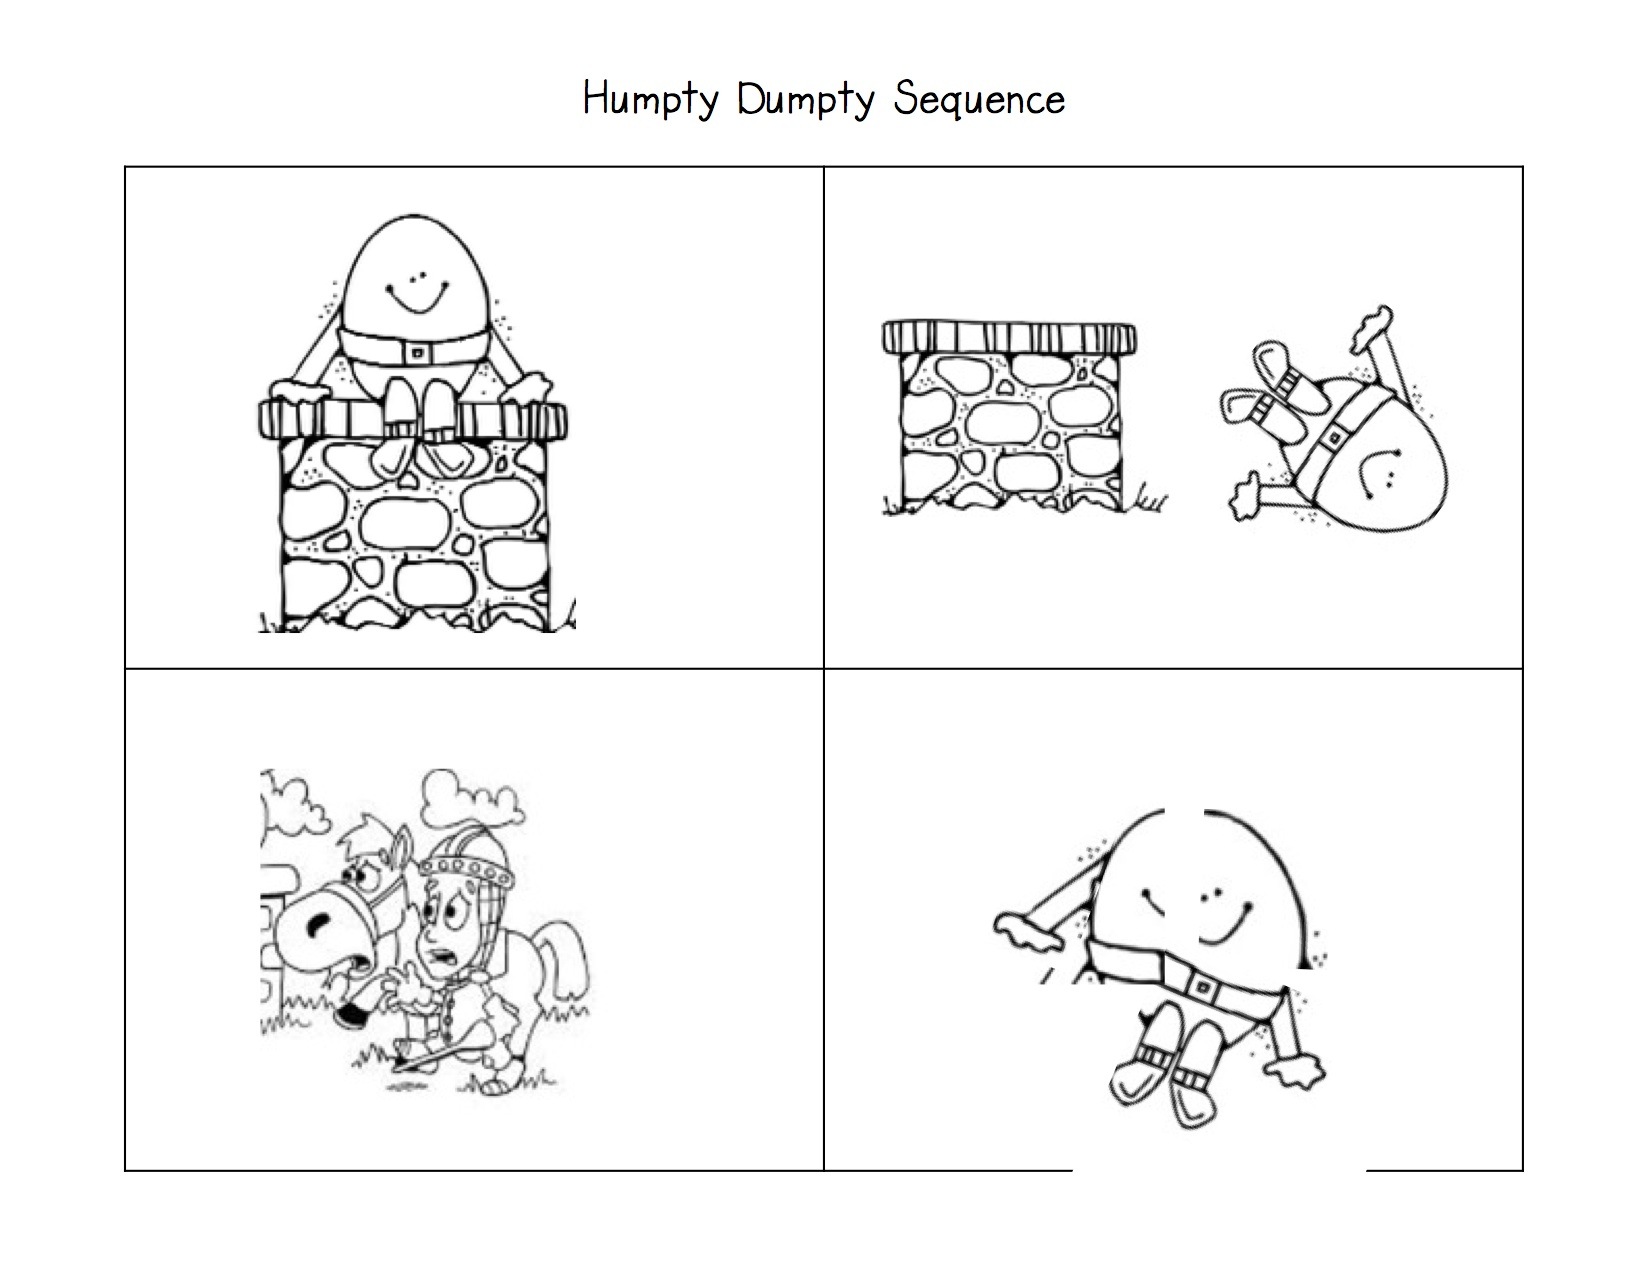 Humpty Dumpty Sequence on story sequencing humpty dumpty